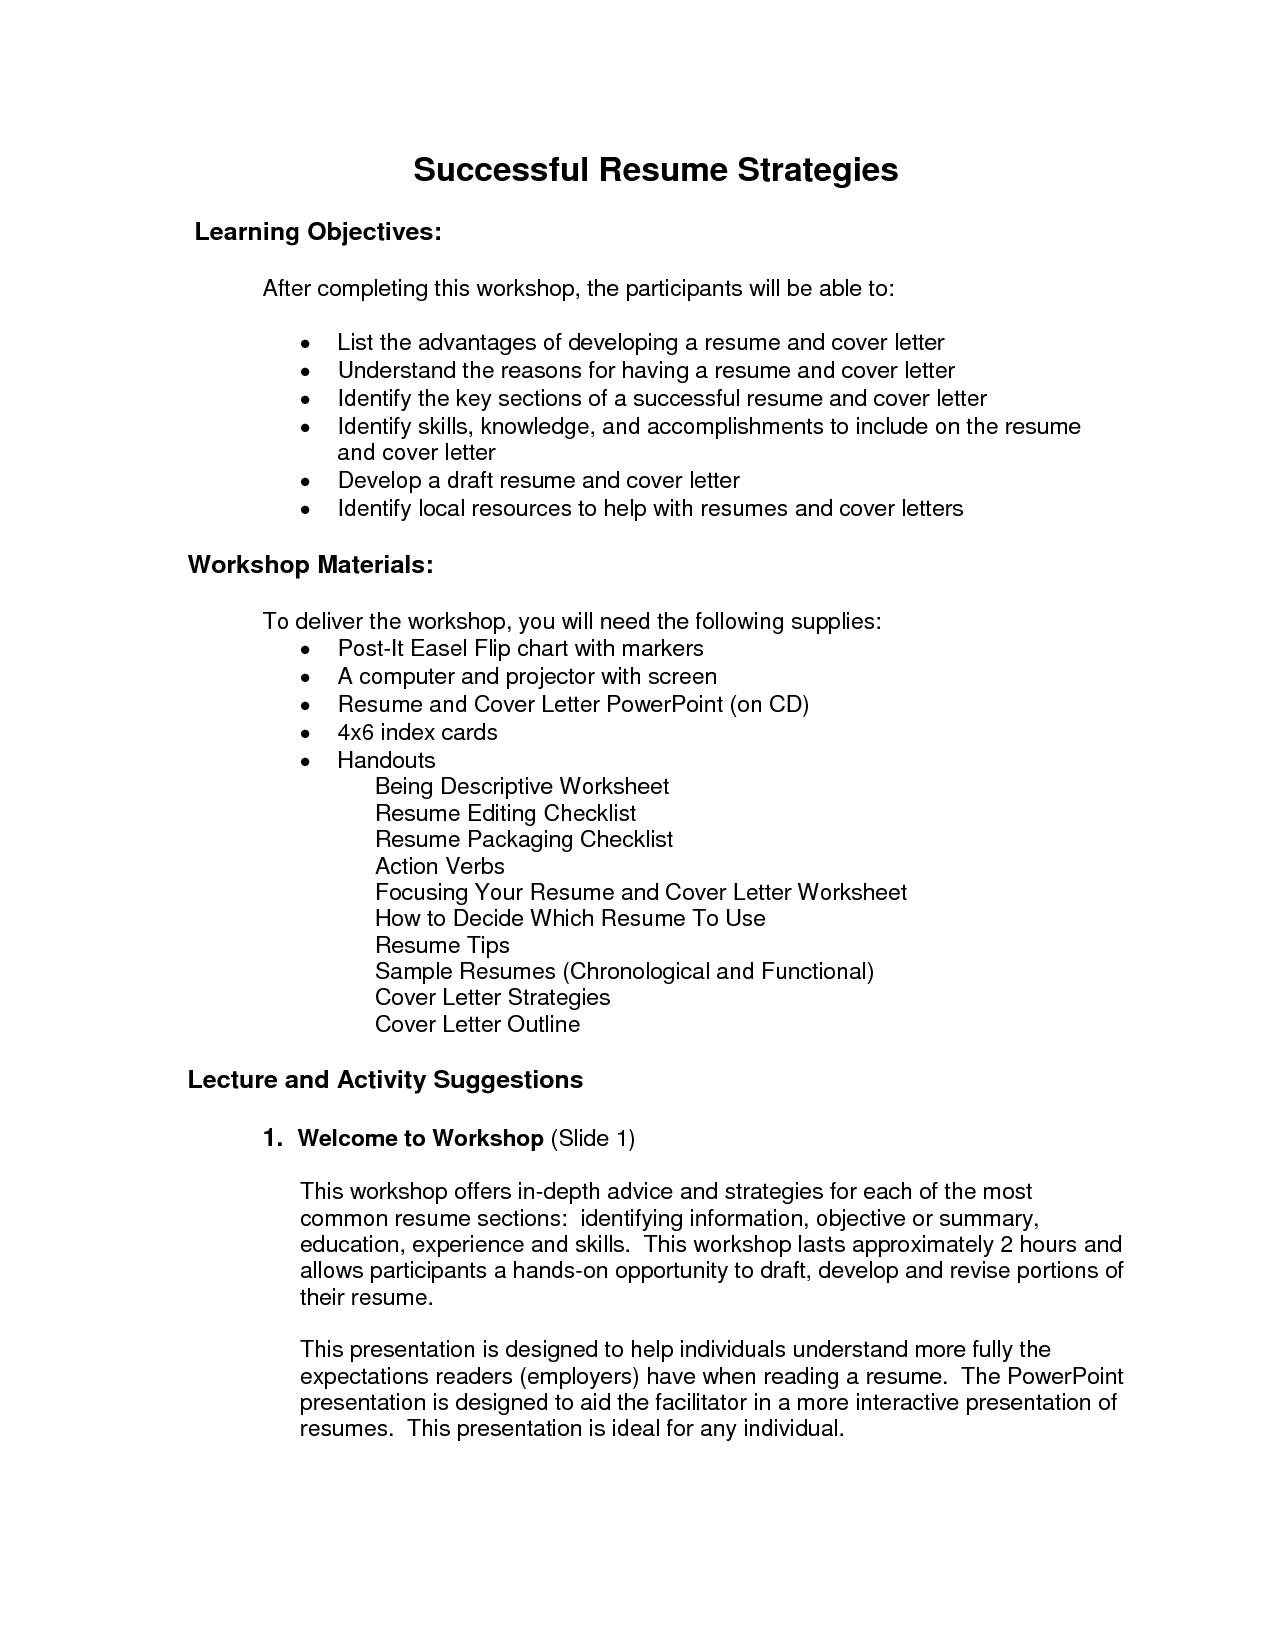 Fashion Stylist Resume Objective   Http://www.resumecareer.info/fashion  Hair Stylist Resume Objective